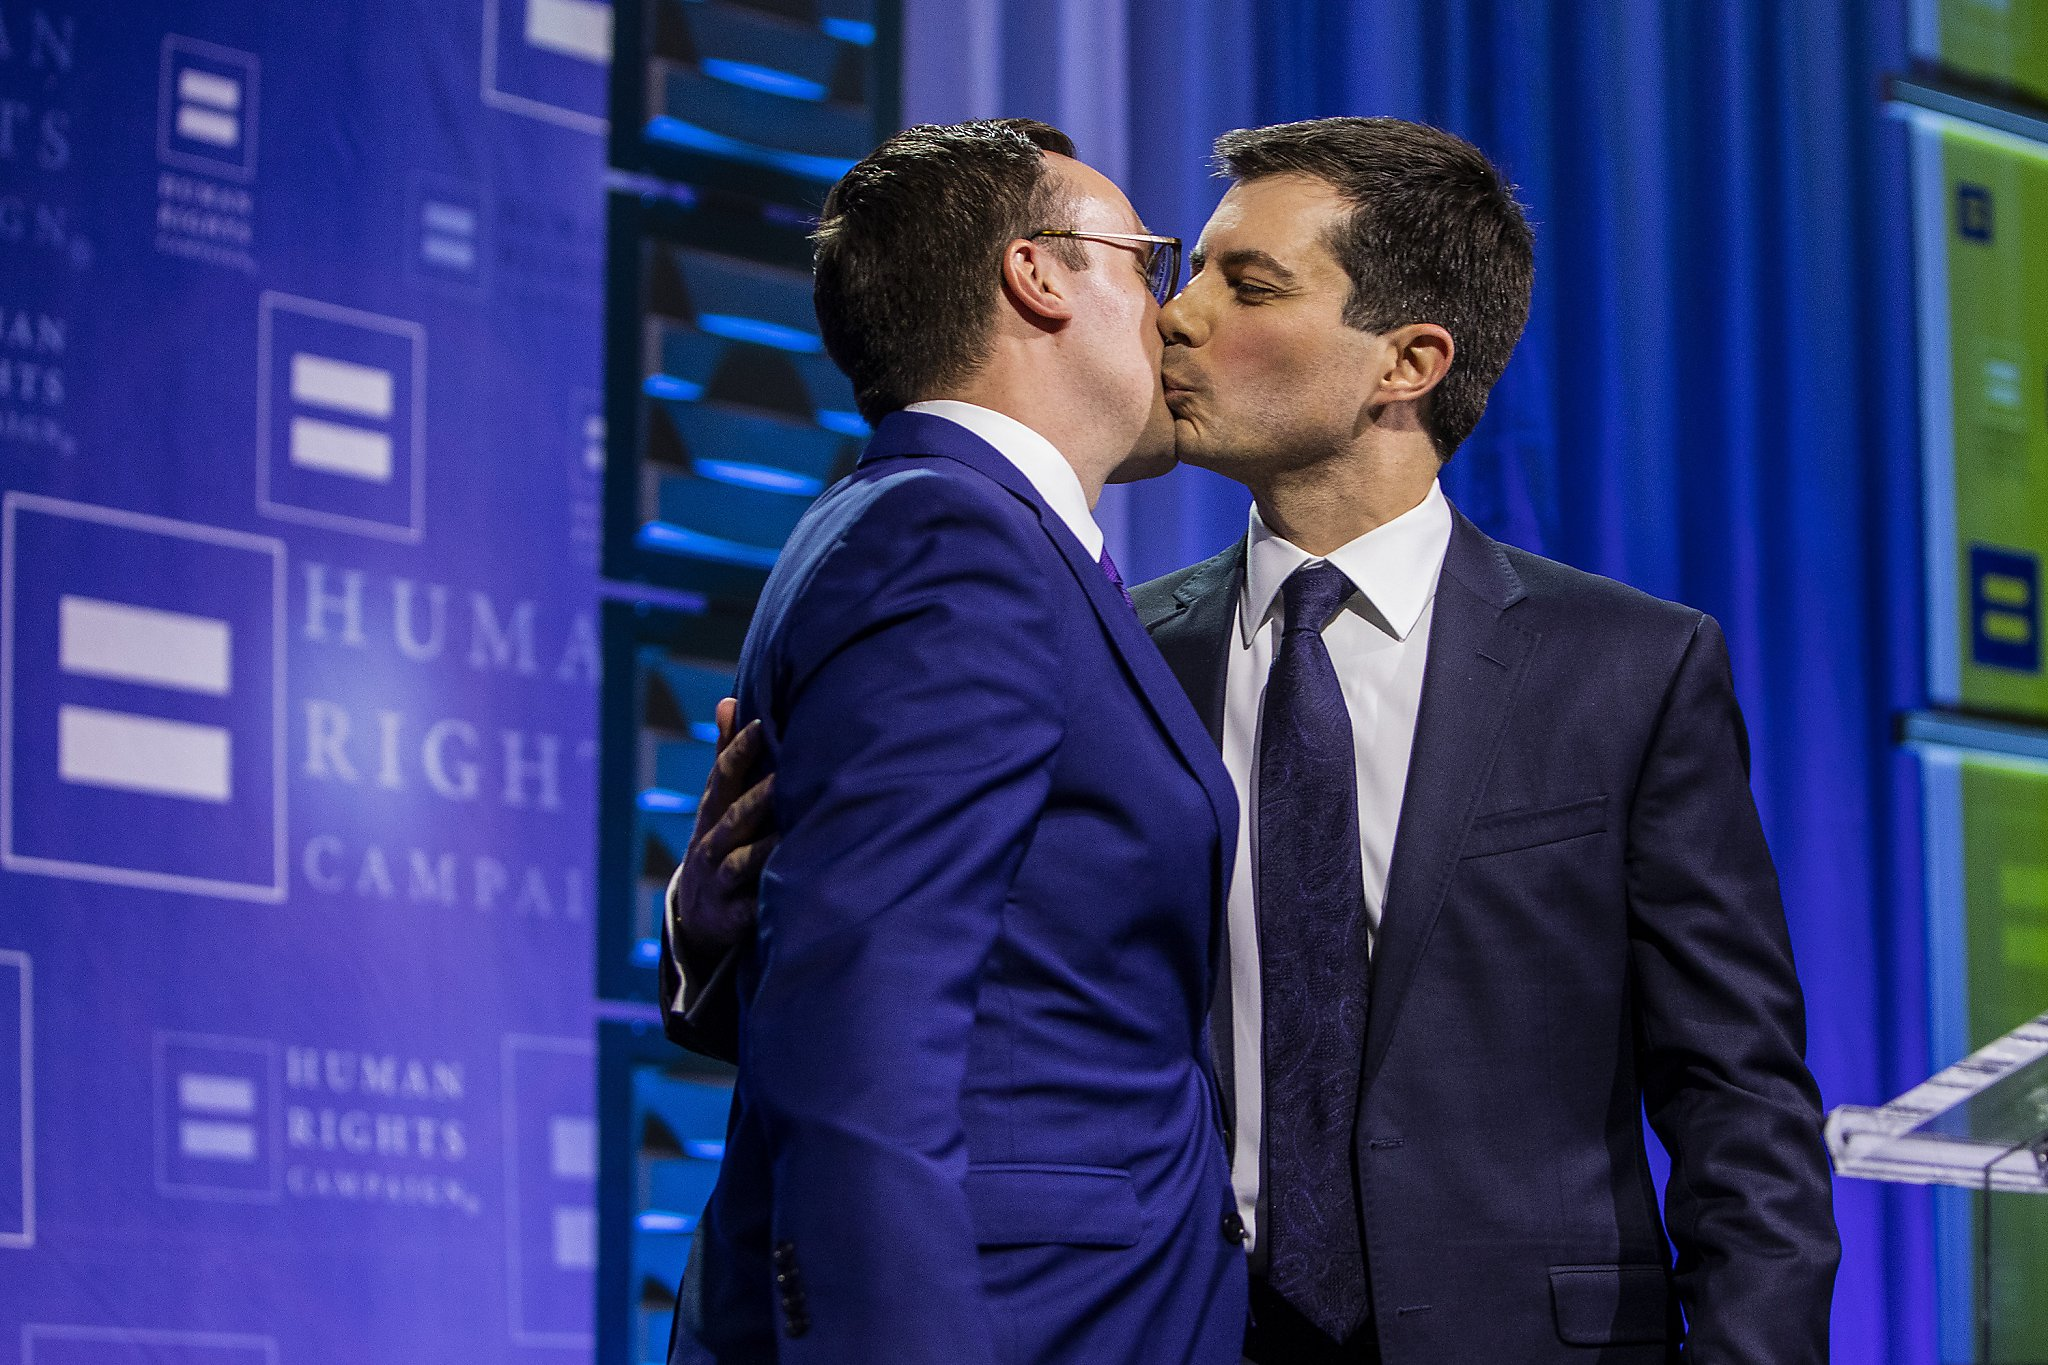 Image result for IMAGES of pete buttigieg and his husband